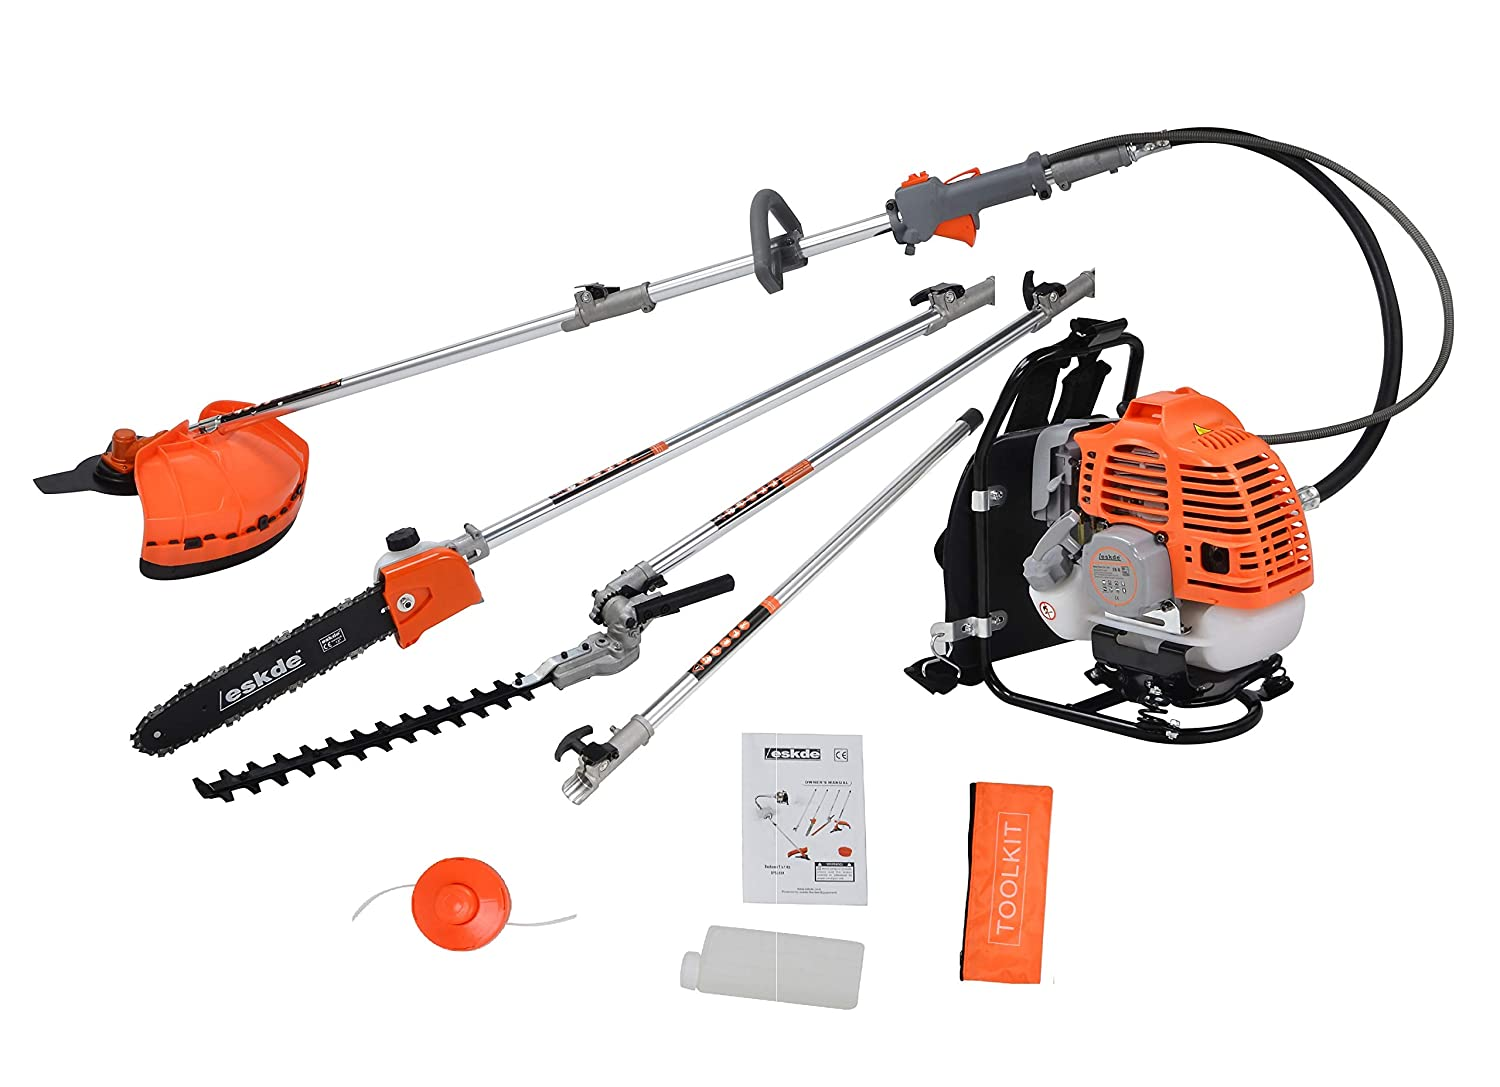 eSkde BP52-S8KIT 5 in 1 Back Pack 52cc Petrol Garden Multi Tool System with Brushcutter/Strimmer / Grass Chainsaw/Hedge Trimmer and Extension Pole, Orange and Grey